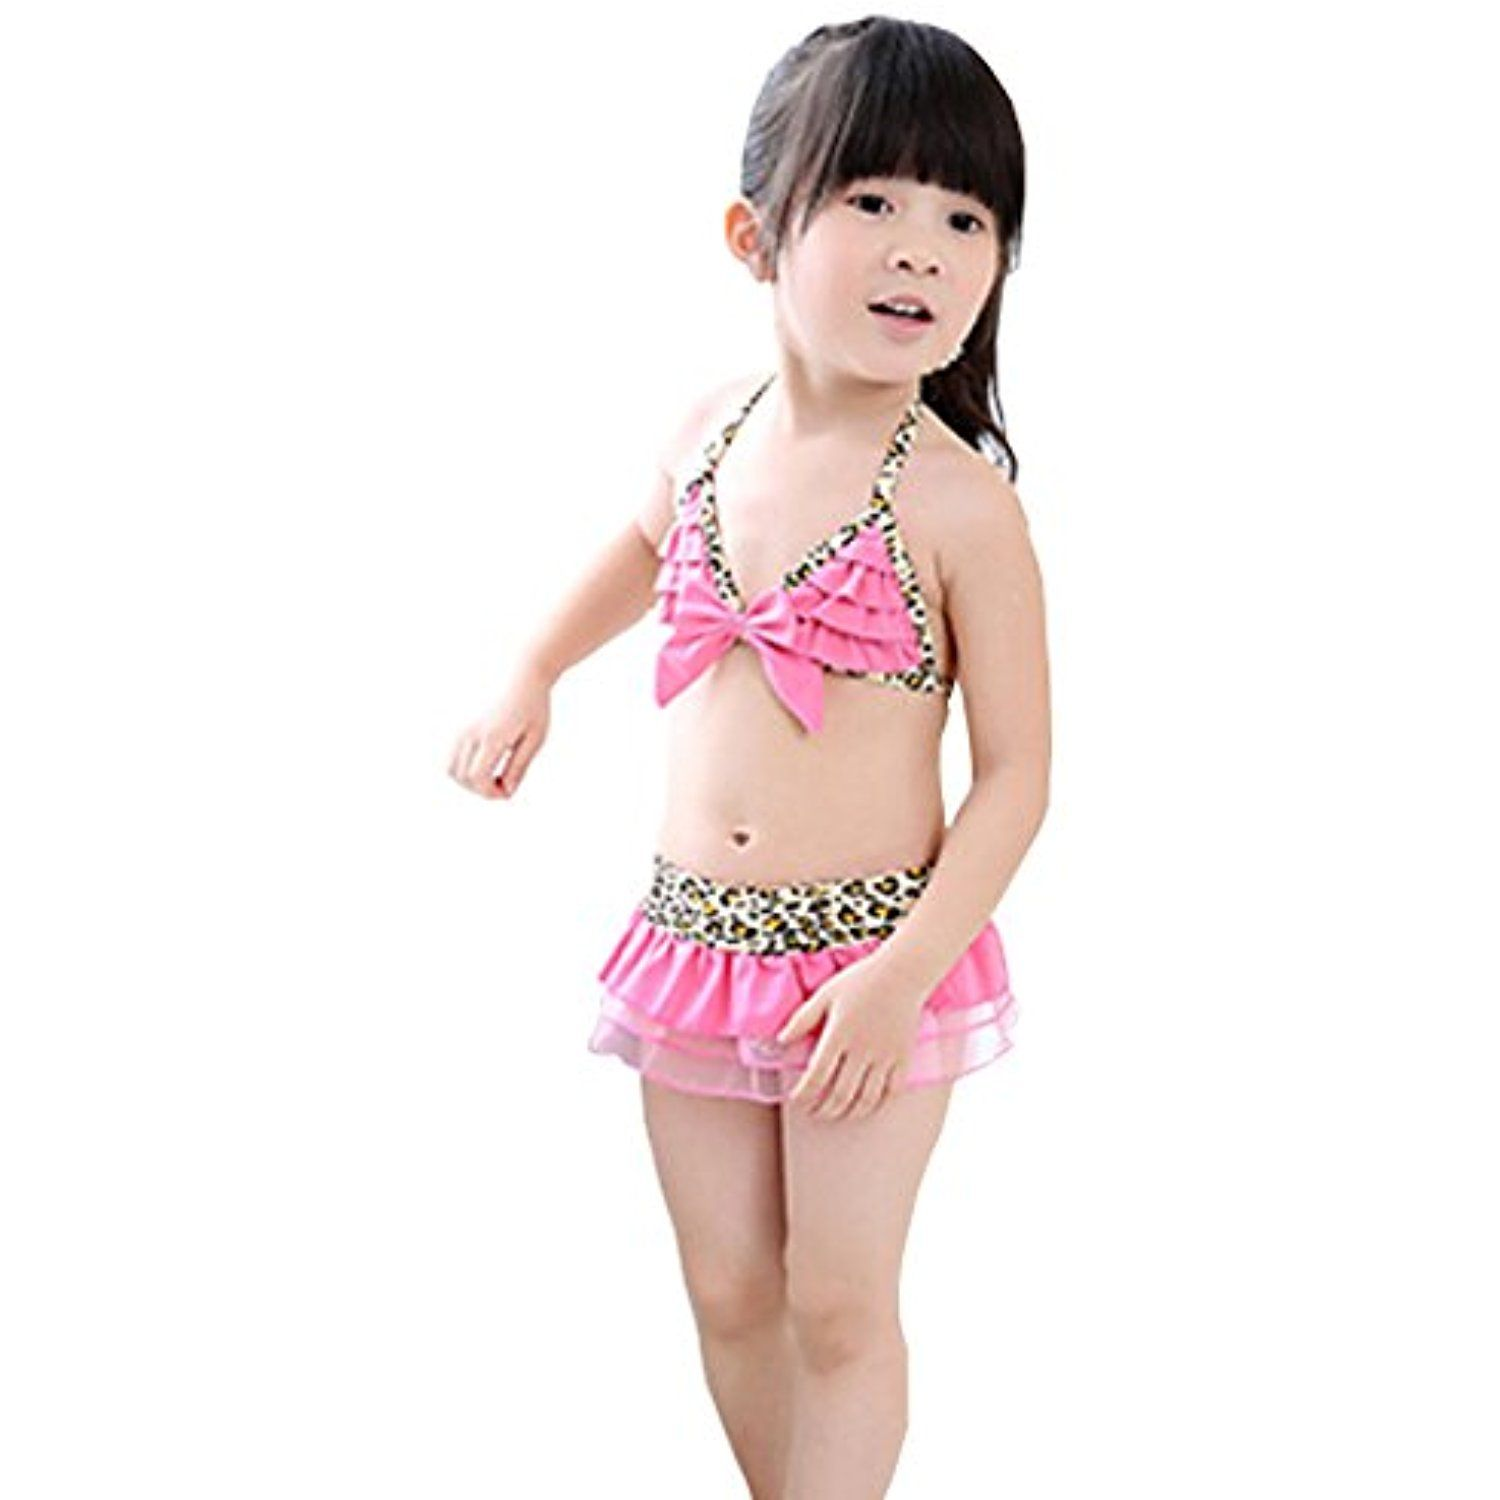 41cb3d13c2 Leopard Style Little Girls Swimsuit Kids Two-pieces Bikini Swimwear 5T Pink     Check out this great product. (This is an affiliate link)  Swimwear